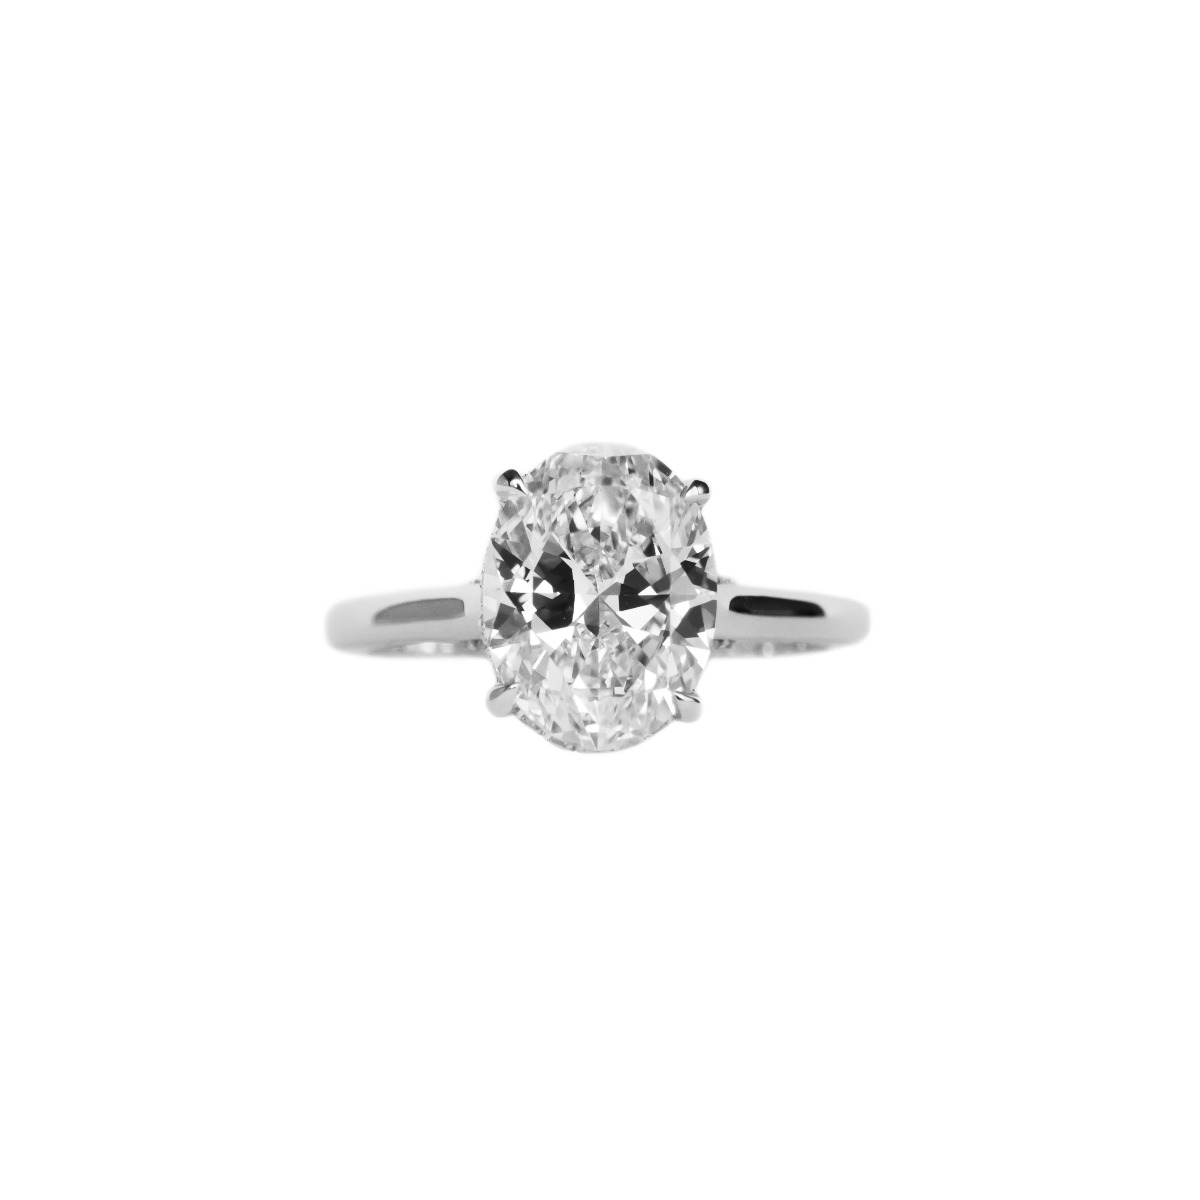 DBK Classic Solitaire Setting For Oval Center With Diamond Basket & Bridge In White Gold